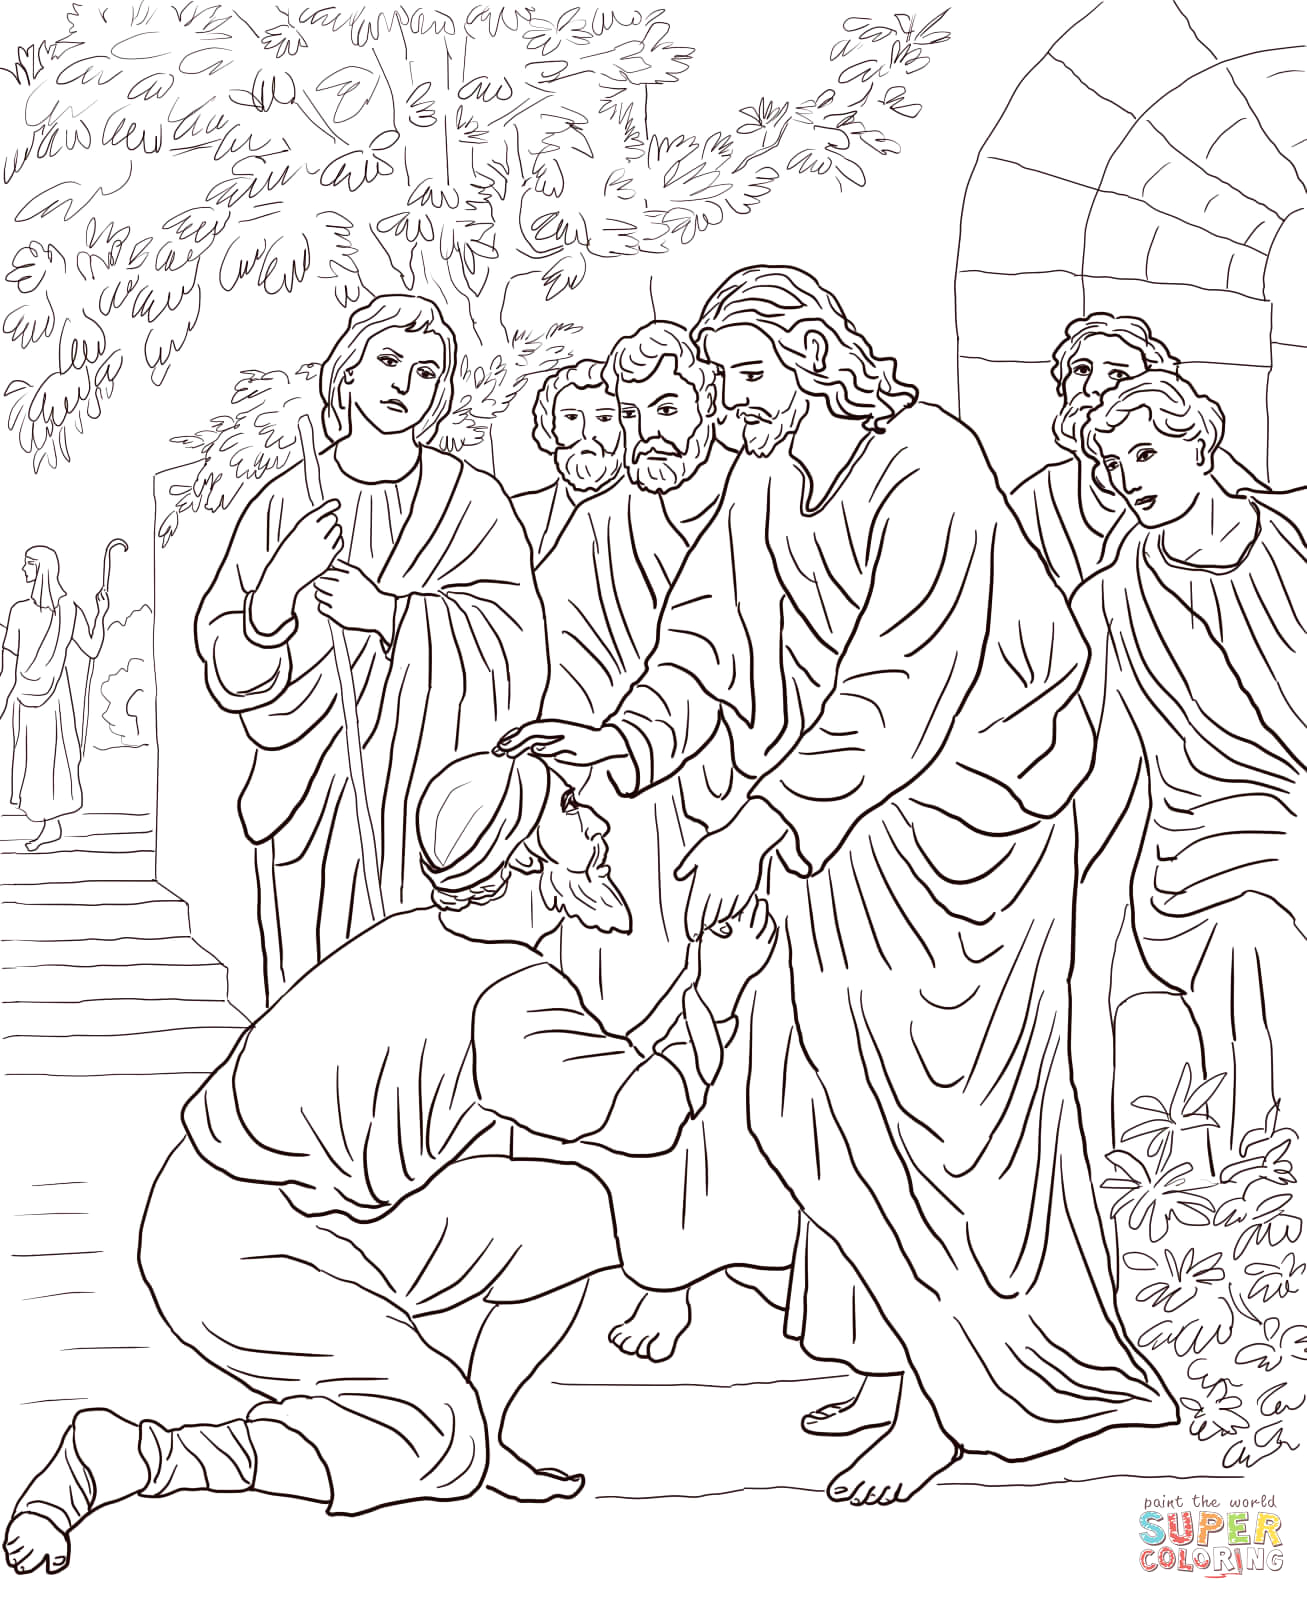 Jesus Heals the Man with Leprosy Coloring Pages Jesus Heals the Leper Coloring Page